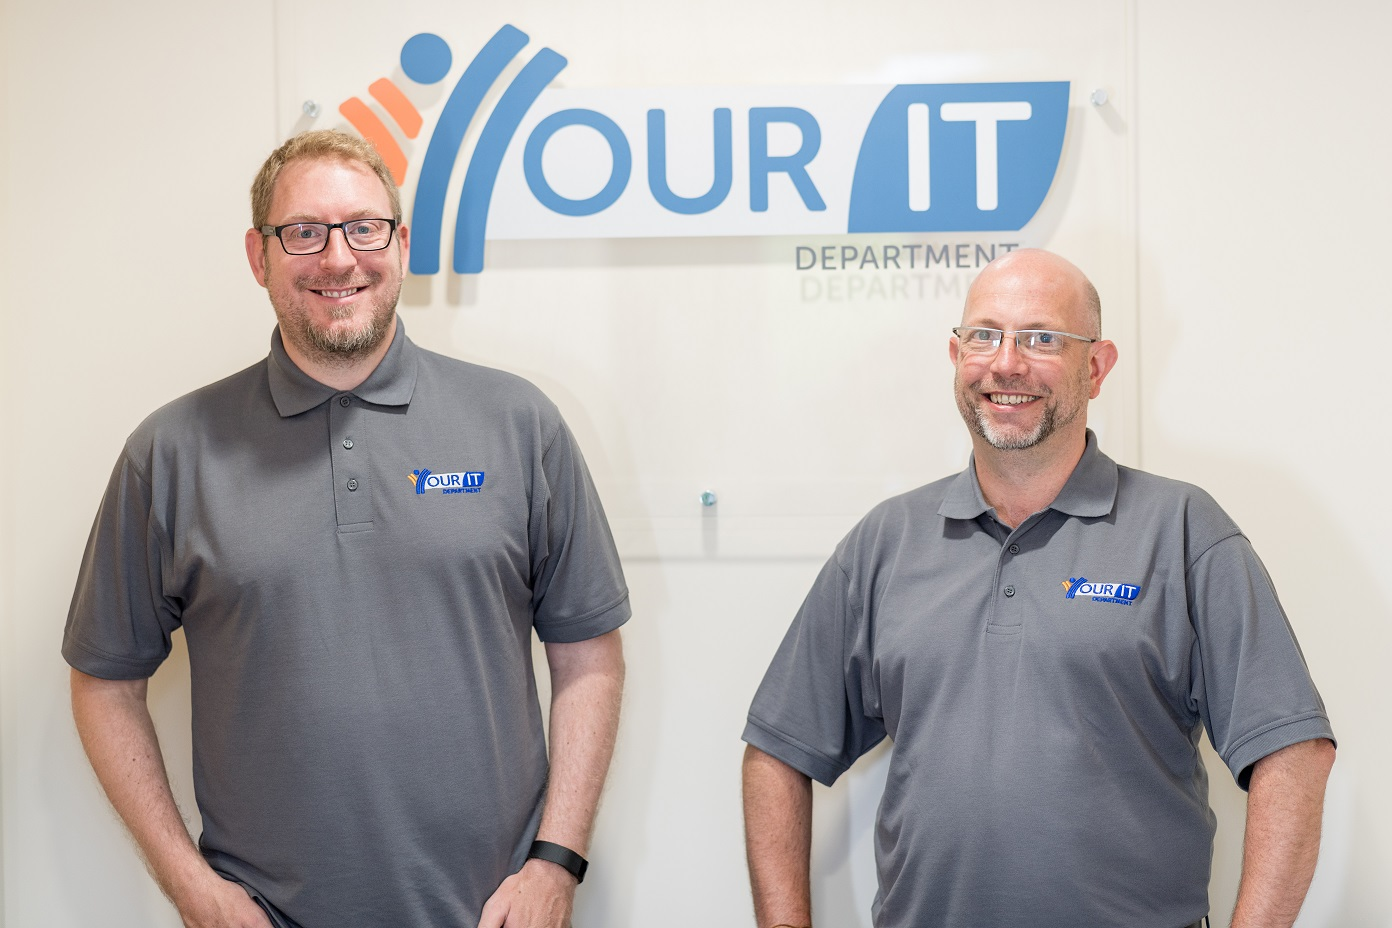 Your IT Department Ranked Among World's Elite Managed Service Providers